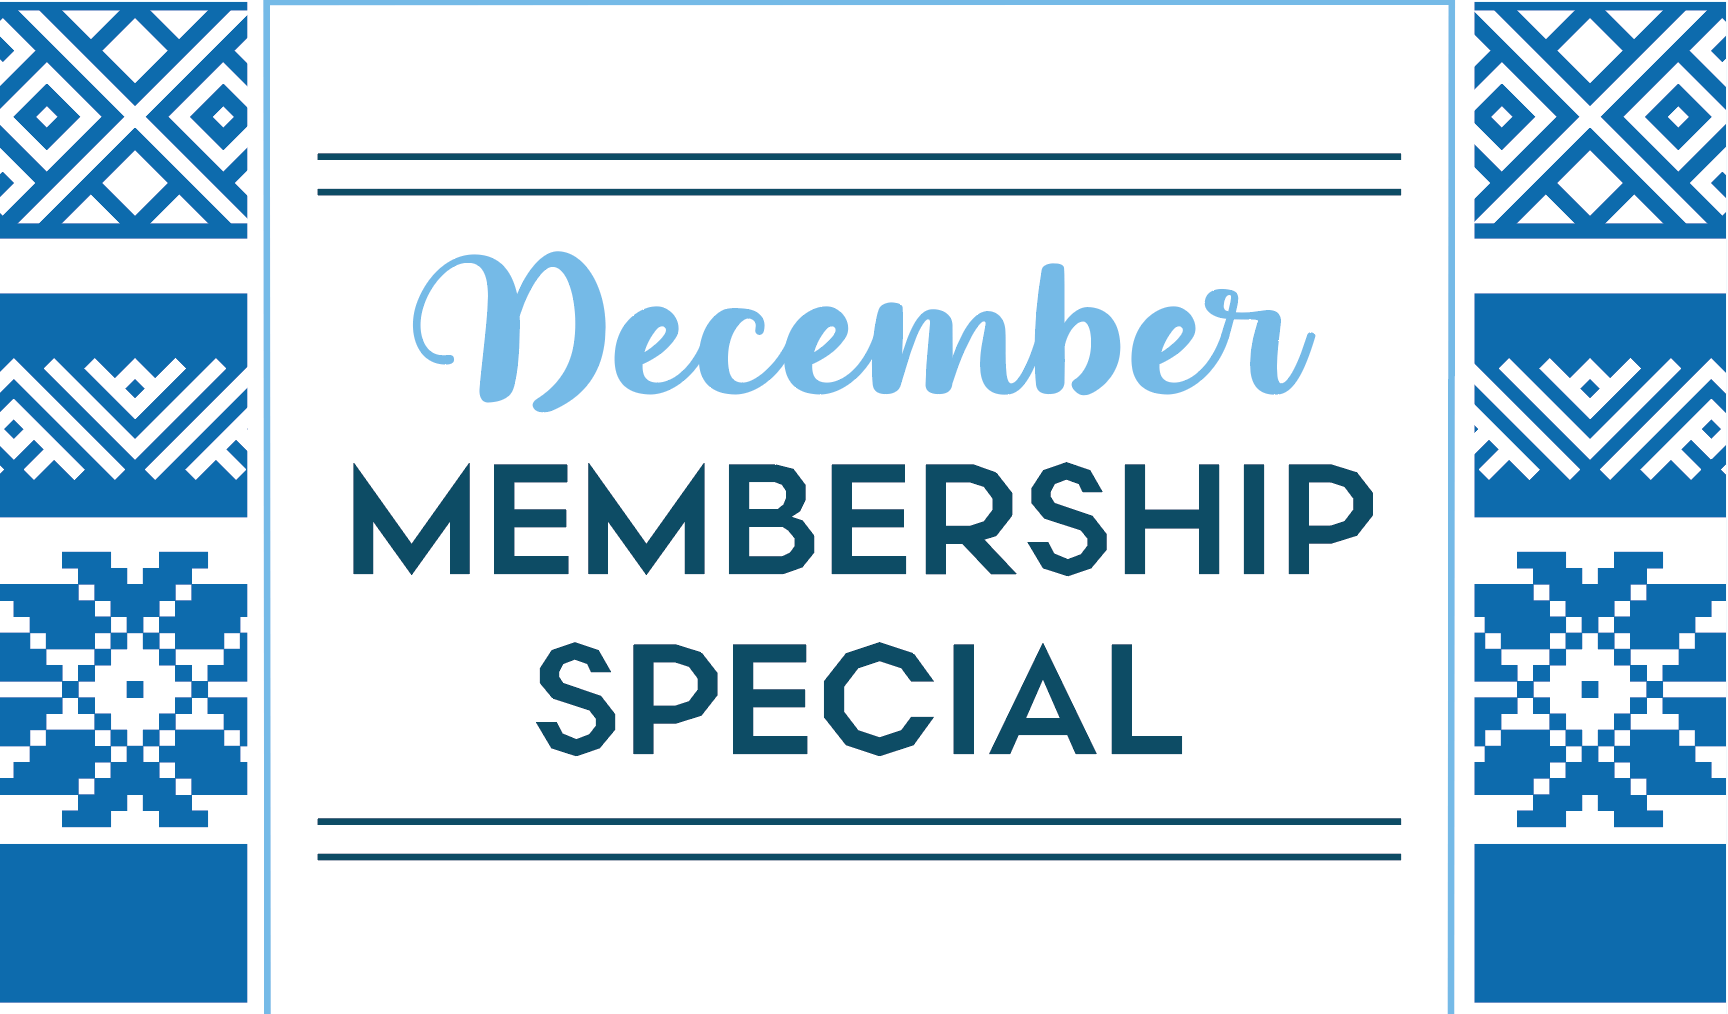 Our December Membership Deal Will Keep You Cozy